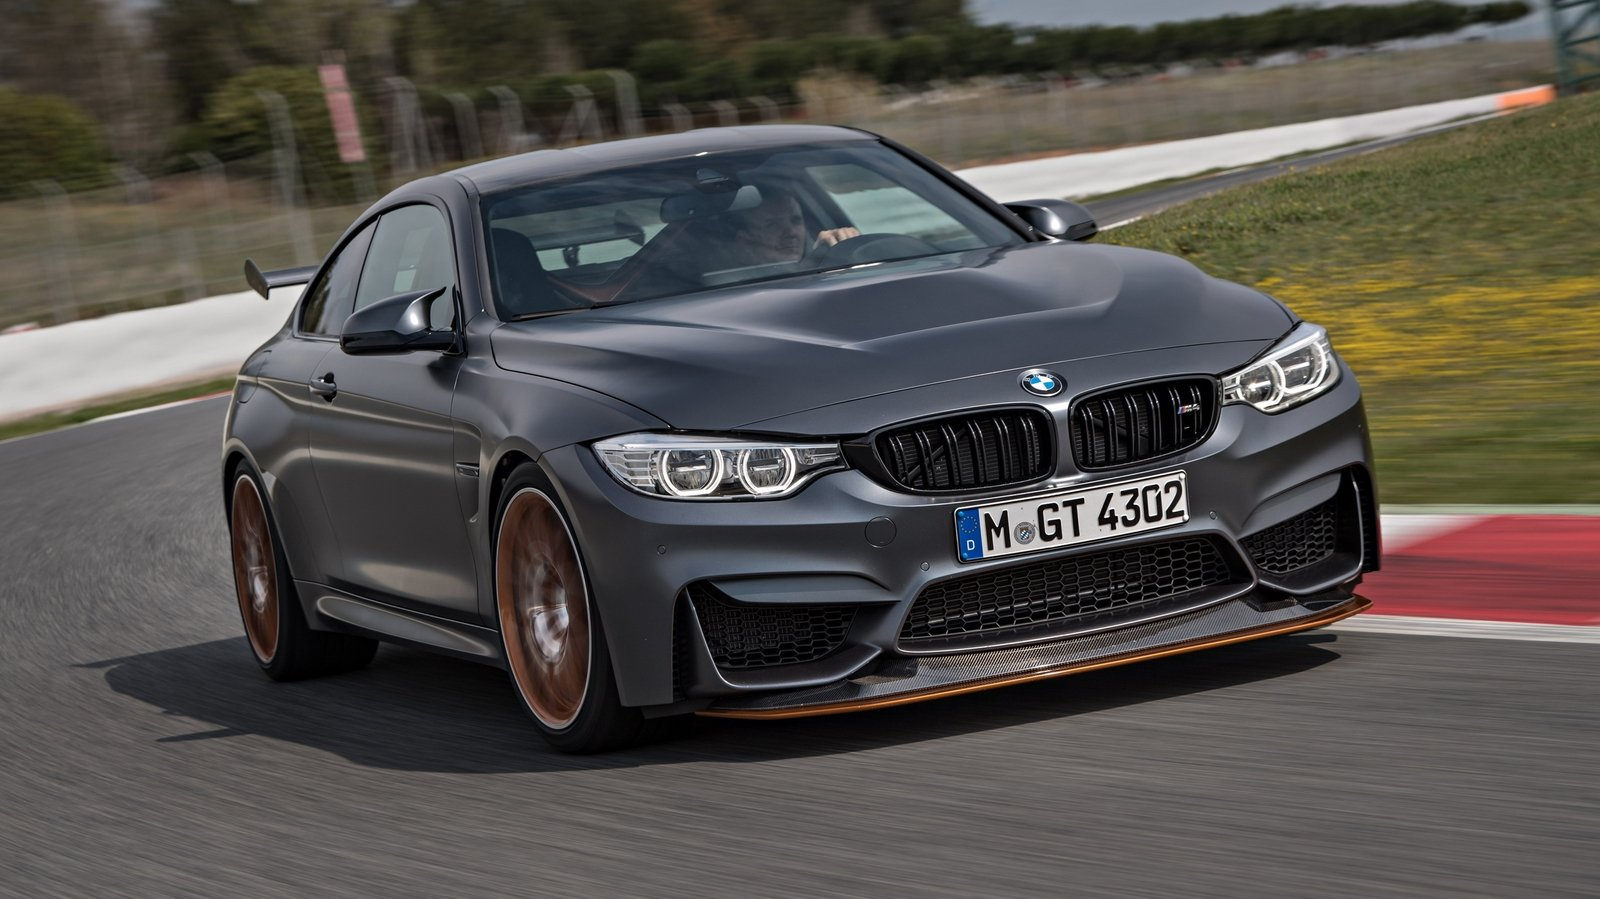 Bmw Built More M4 Gts Models Than Planned Top Speed